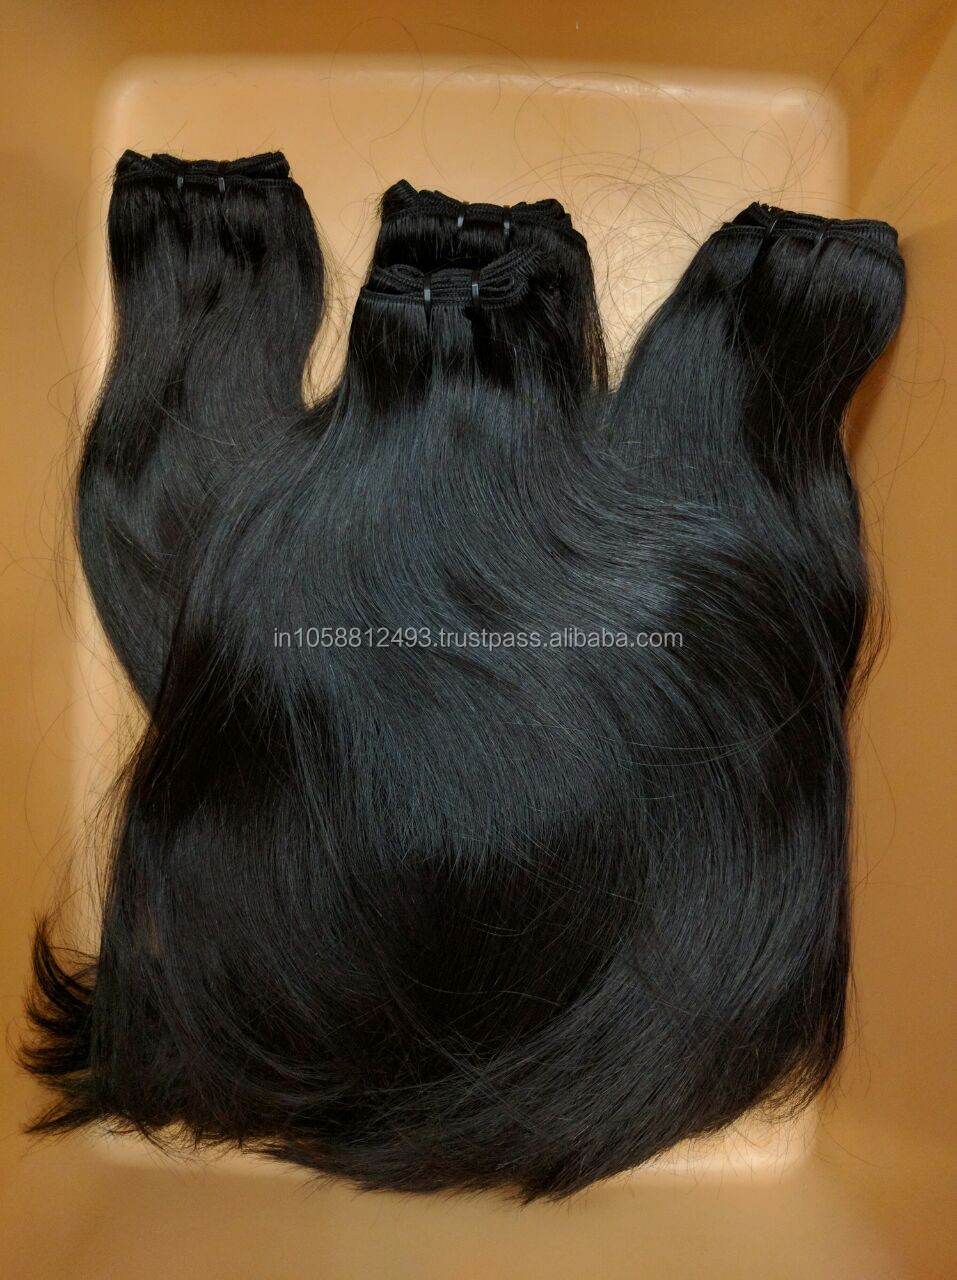 Wholesale Silky straight hair 100% remy virgin human hair extenion